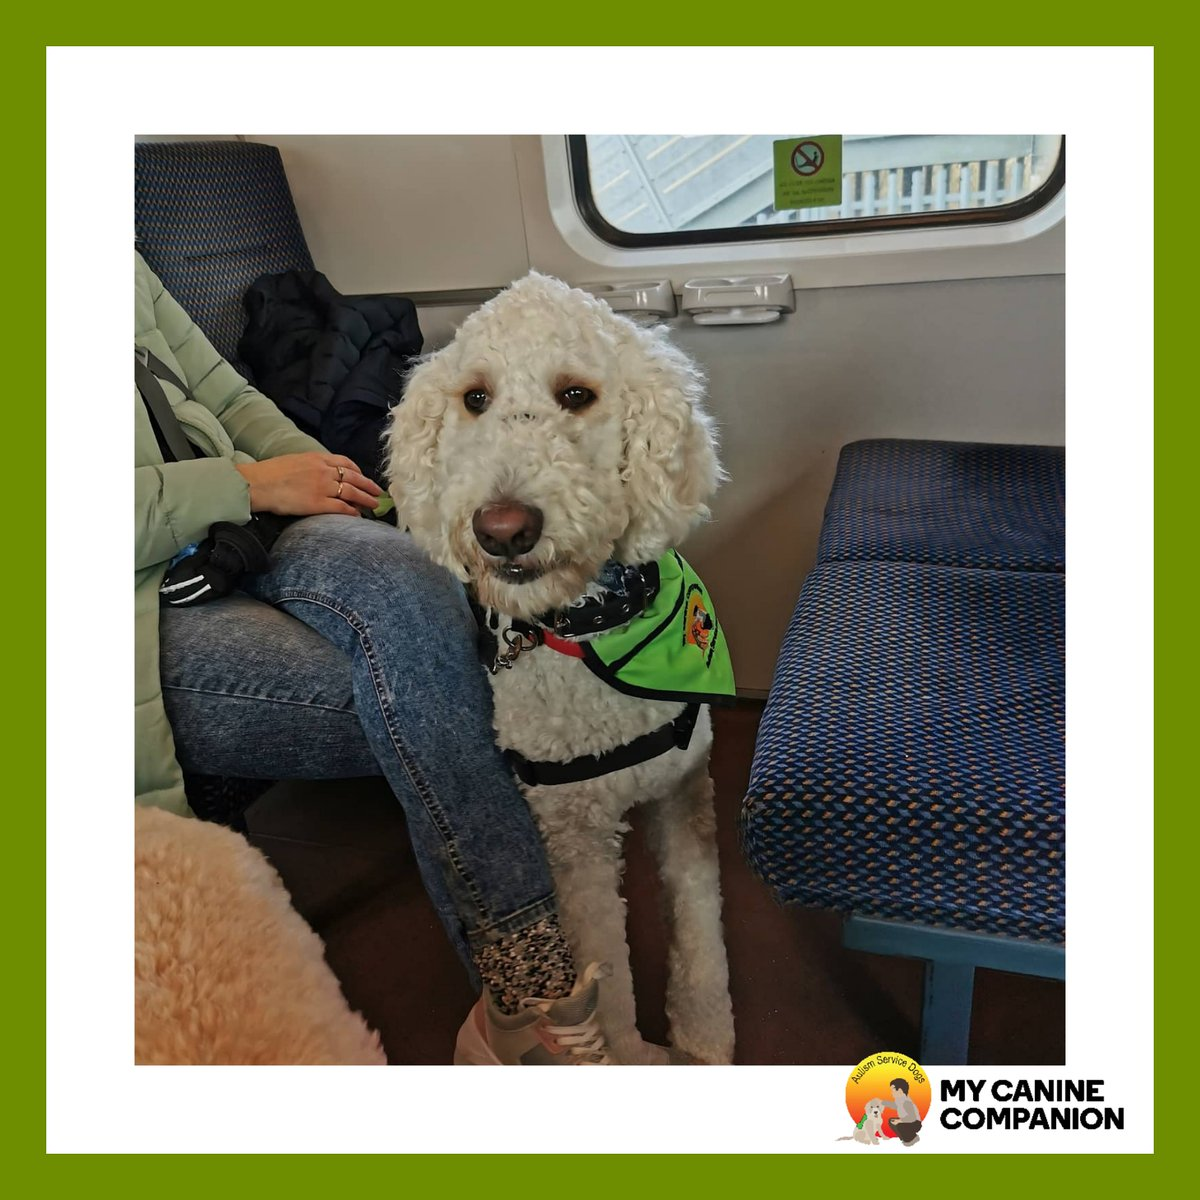 Happy Friday from Hugo   #autismservicedog #servicedog #autism #asd #workingdog #greenjacketdog #mcc #mycaninecompanion<br>http://pic.twitter.com/bOKahAuTVs